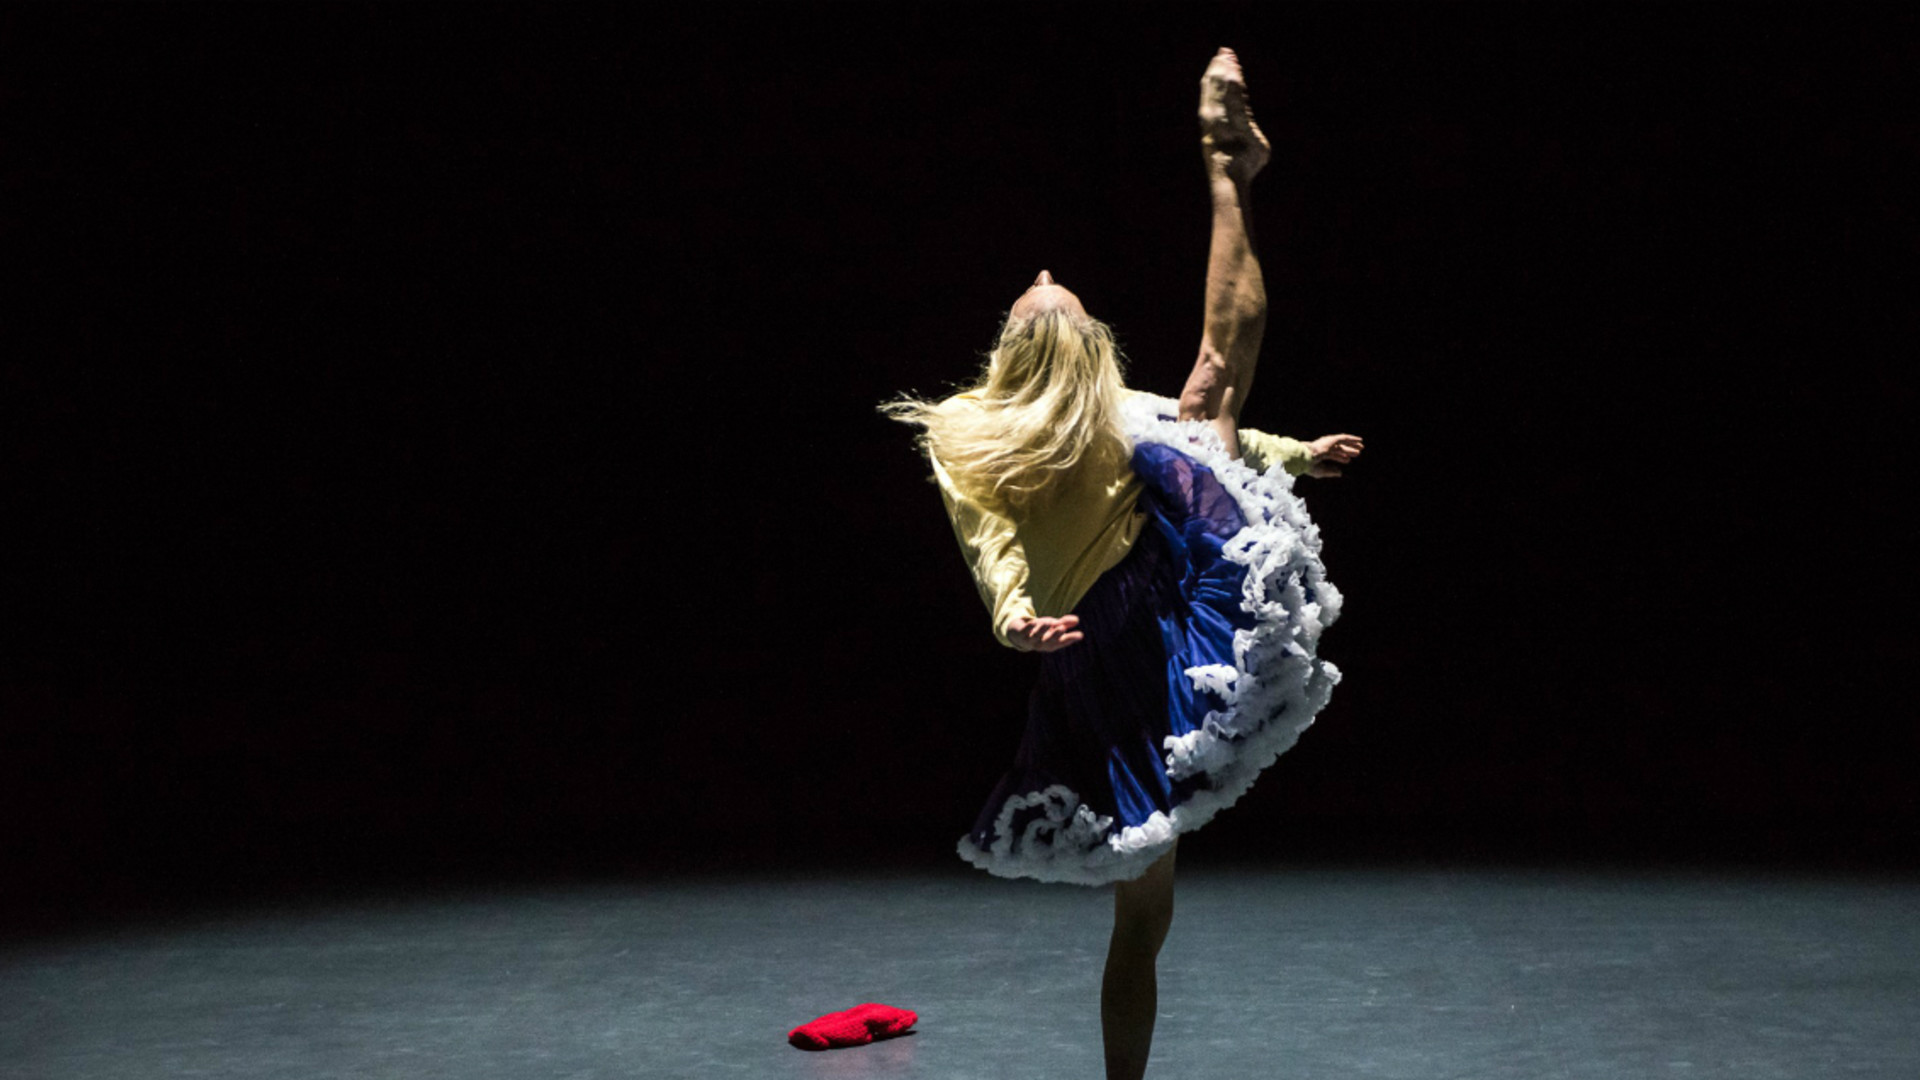 A dancer stands on one leg, with the other leg pointed and stretching upwards.